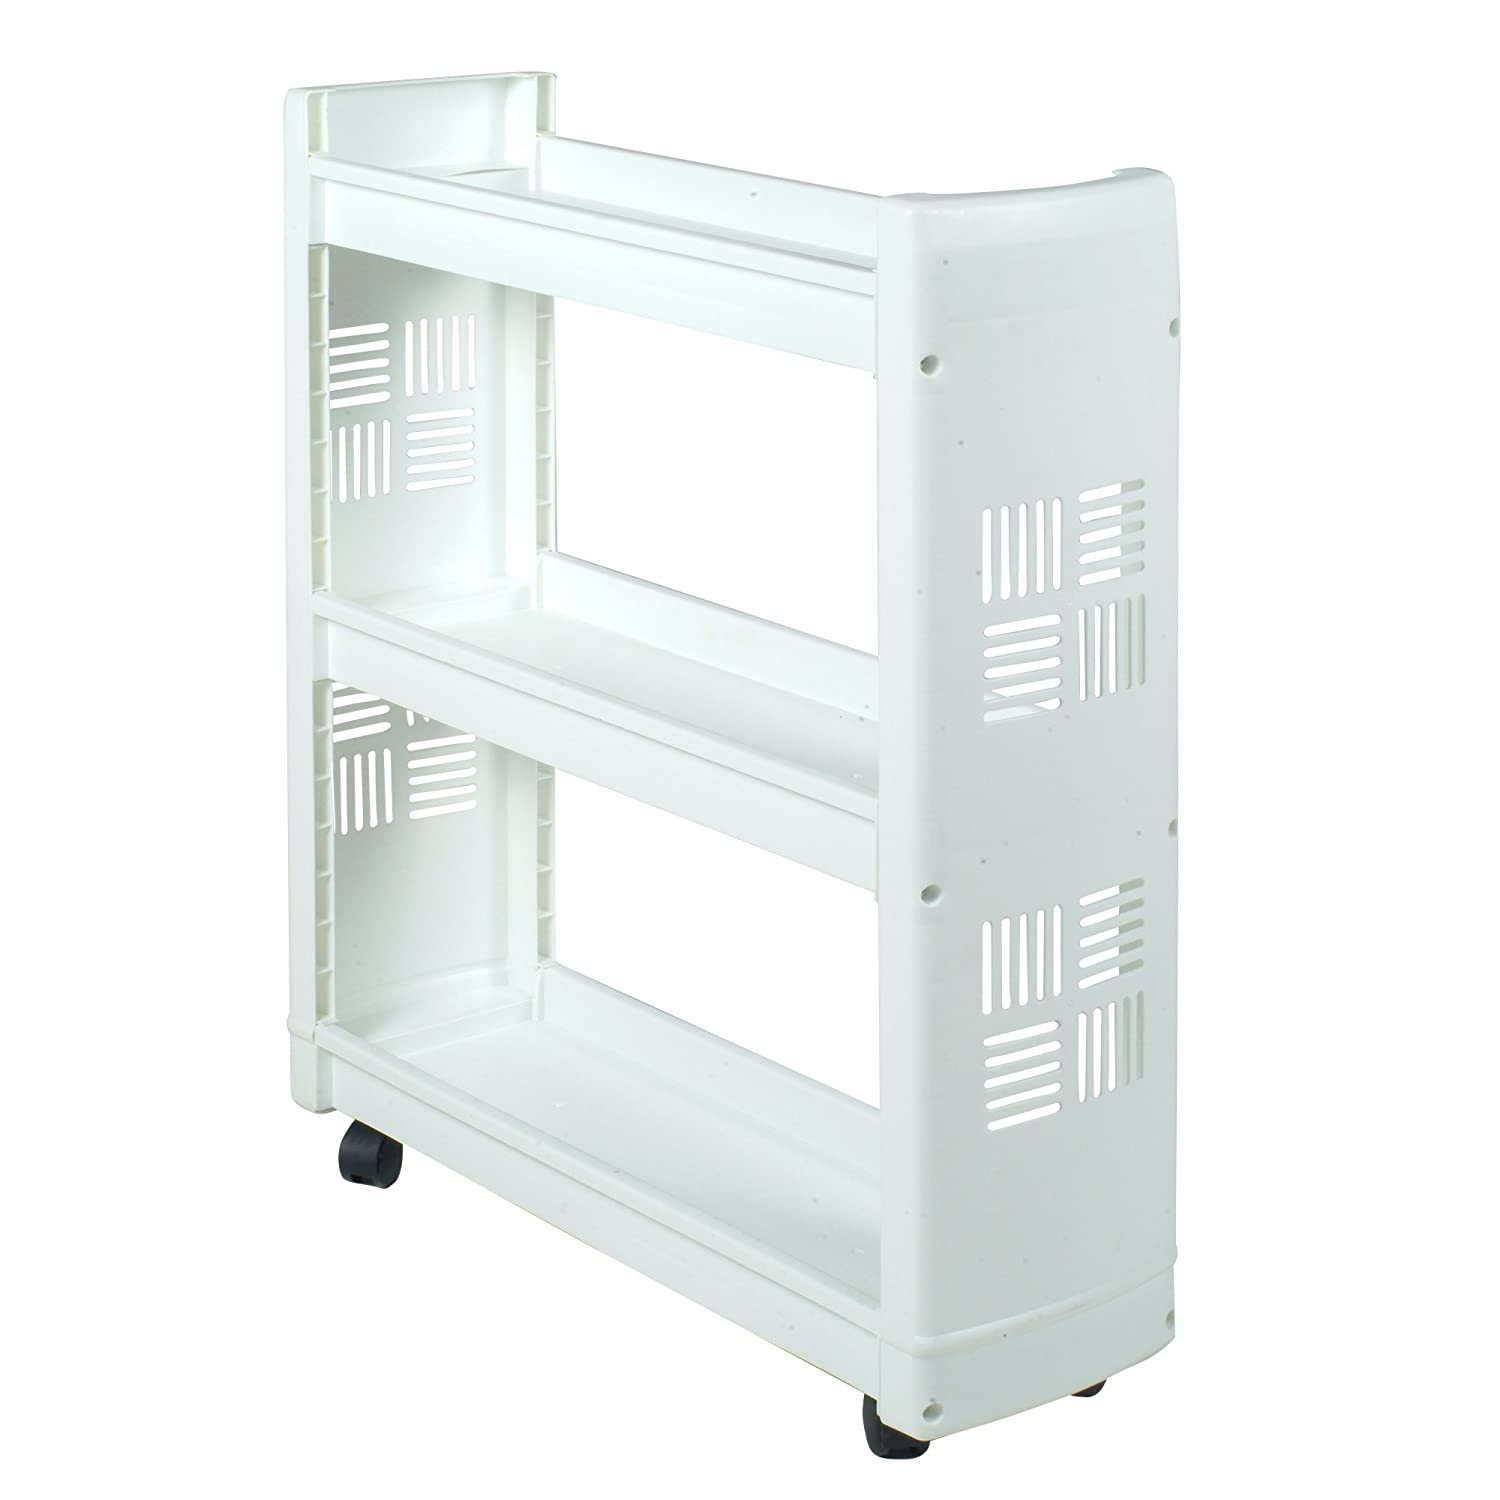 Delightful Amazon.com: Whirlpool 1903WH Laundry Supply Storage Cart: Home Improvement